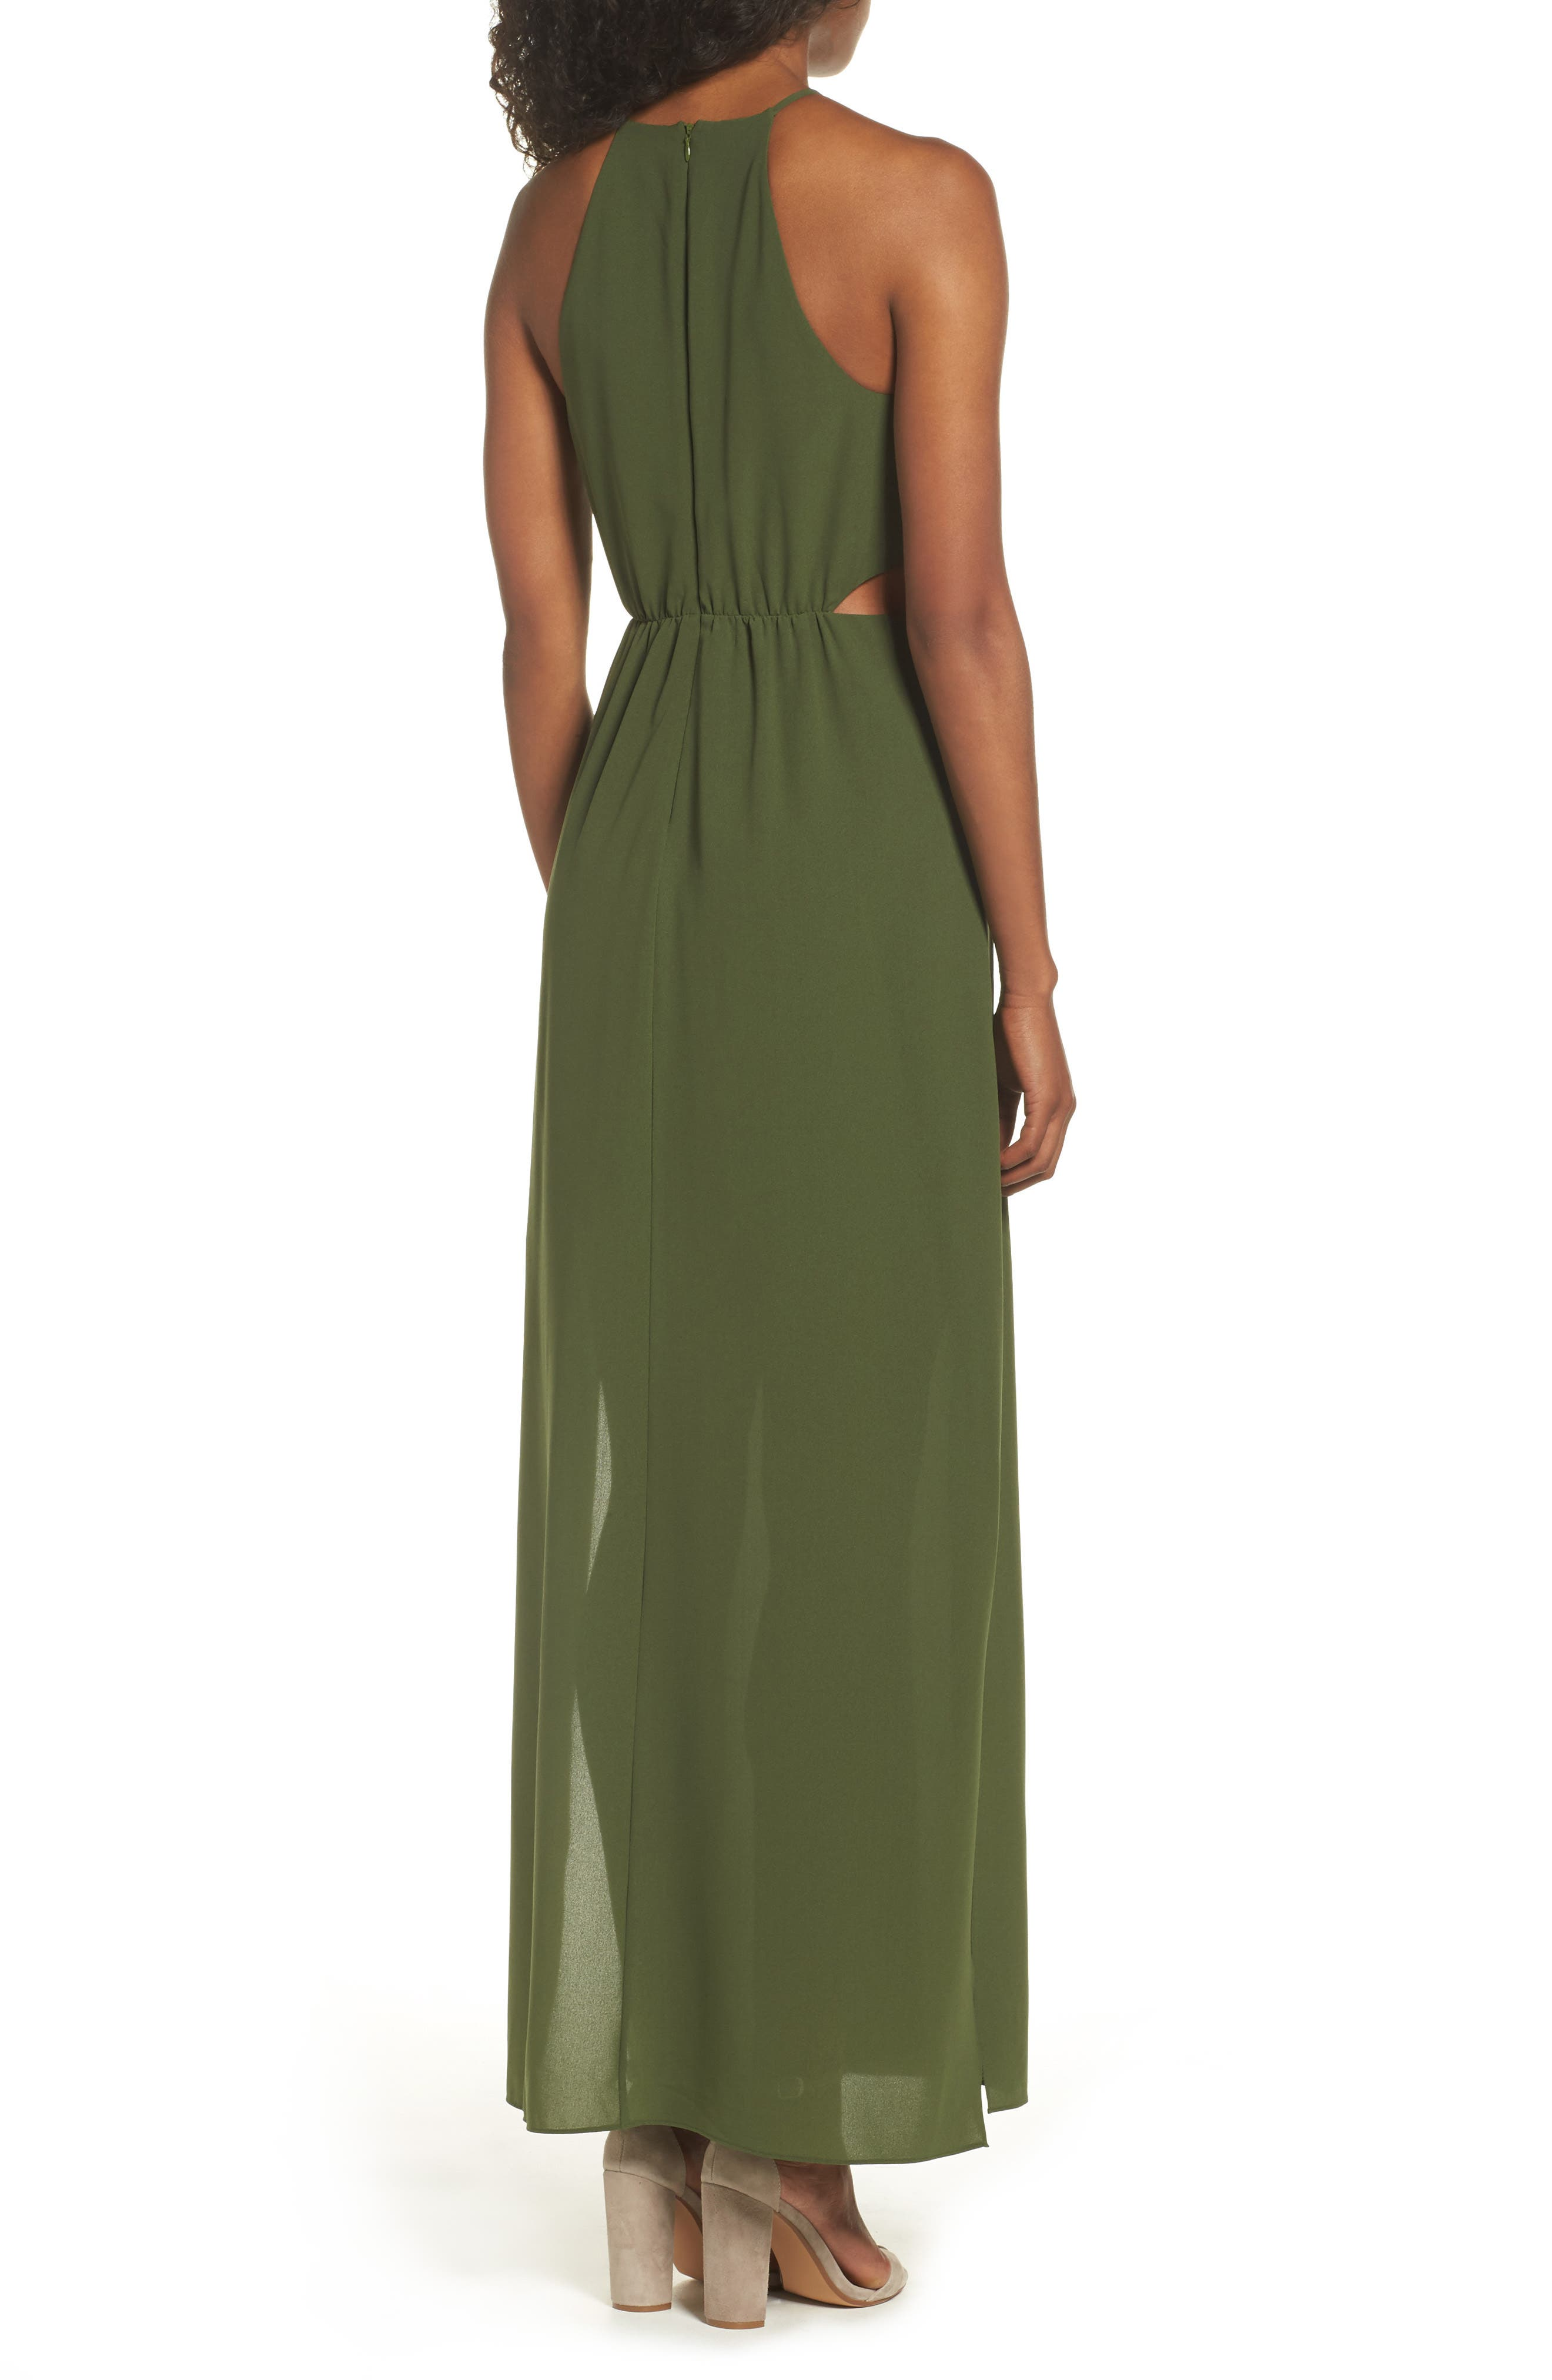 Gazing At The Observatory Maxi Dress,                             Alternate thumbnail 3, color,                             Army